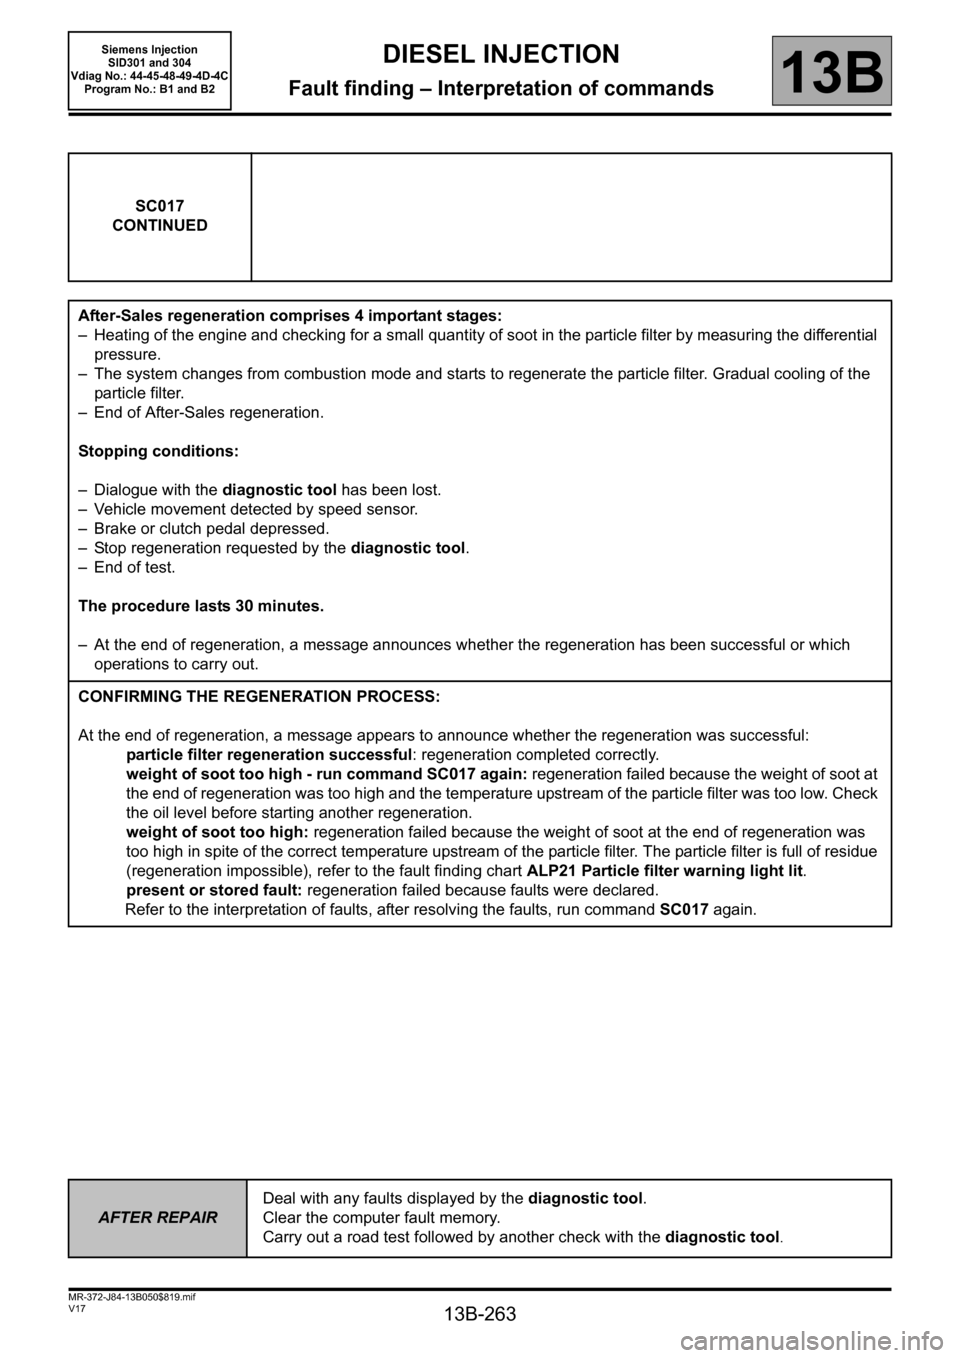 RENAULT SCENIC 2011 J95 / 3.G Engine And Peripherals Siemens Injection Workshop Manual, Page 263